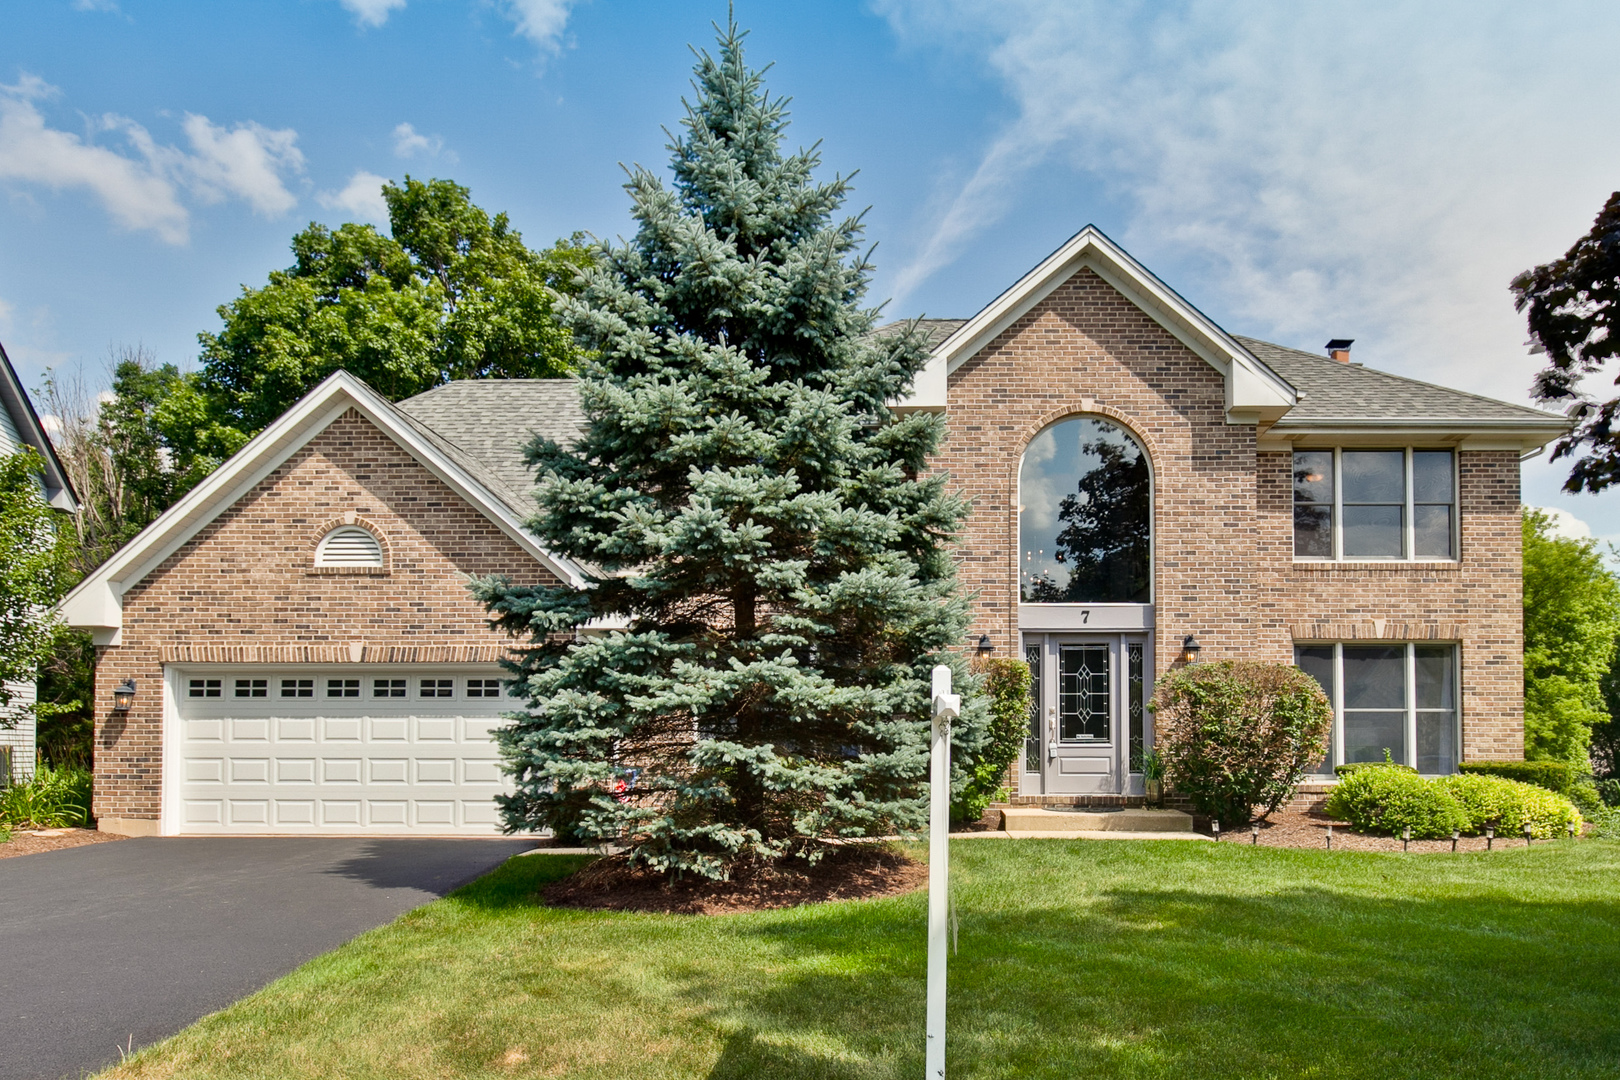 Photo for 7 Fernwood Court, CARY, IL 60013 (MLS # 10477191)